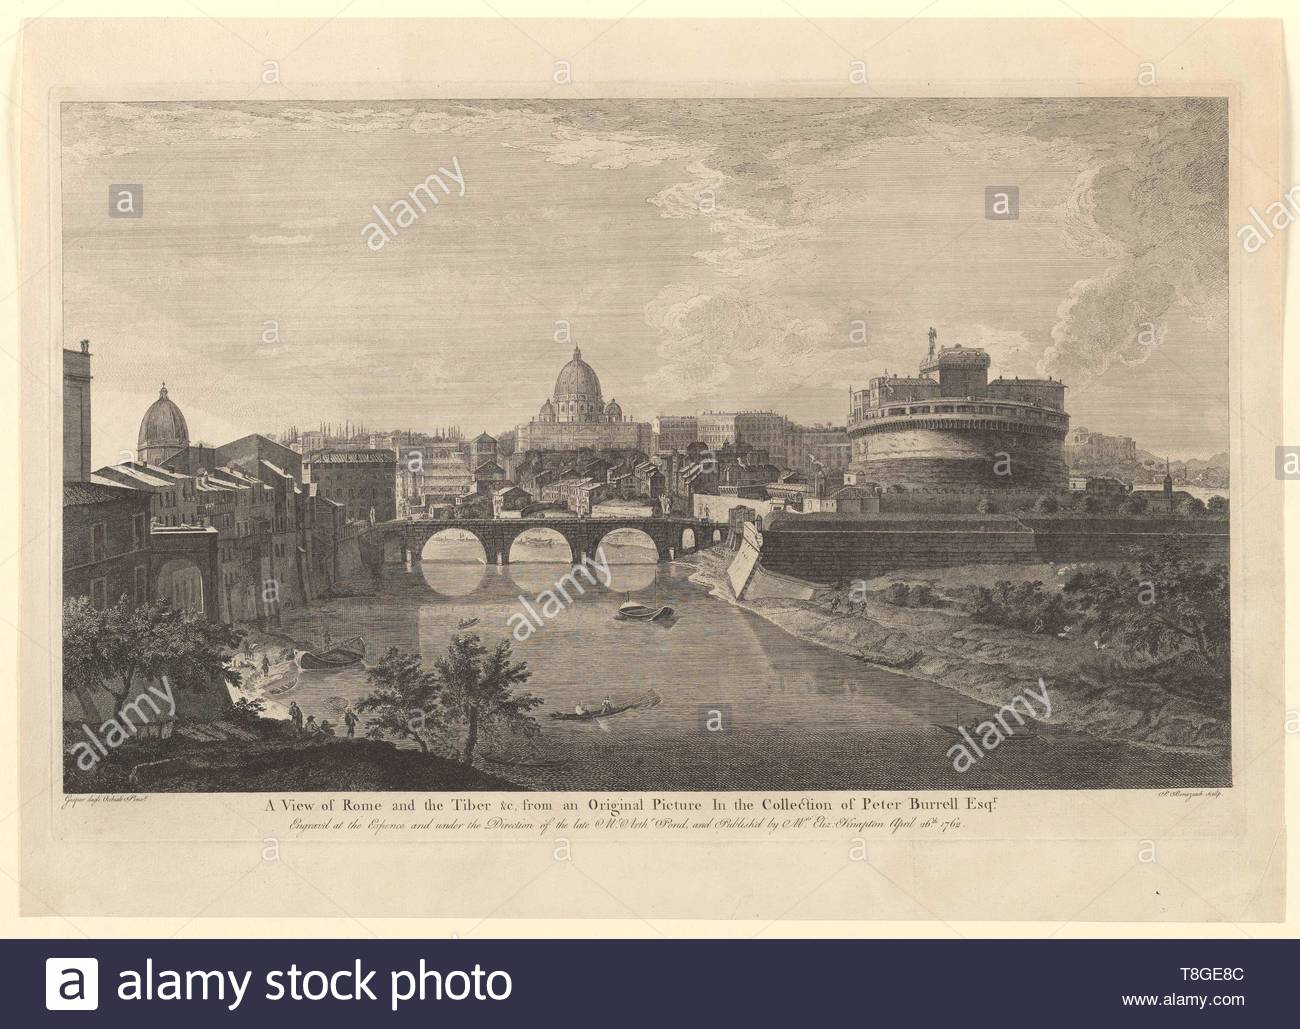 Benazech, Peter Paul, approximately 1730-1783. printmaker.-A view of Rome and the Tiber  c, from an original picture in the collection of Peter Burrell Esqr., 1762 April 26 - Stock Image